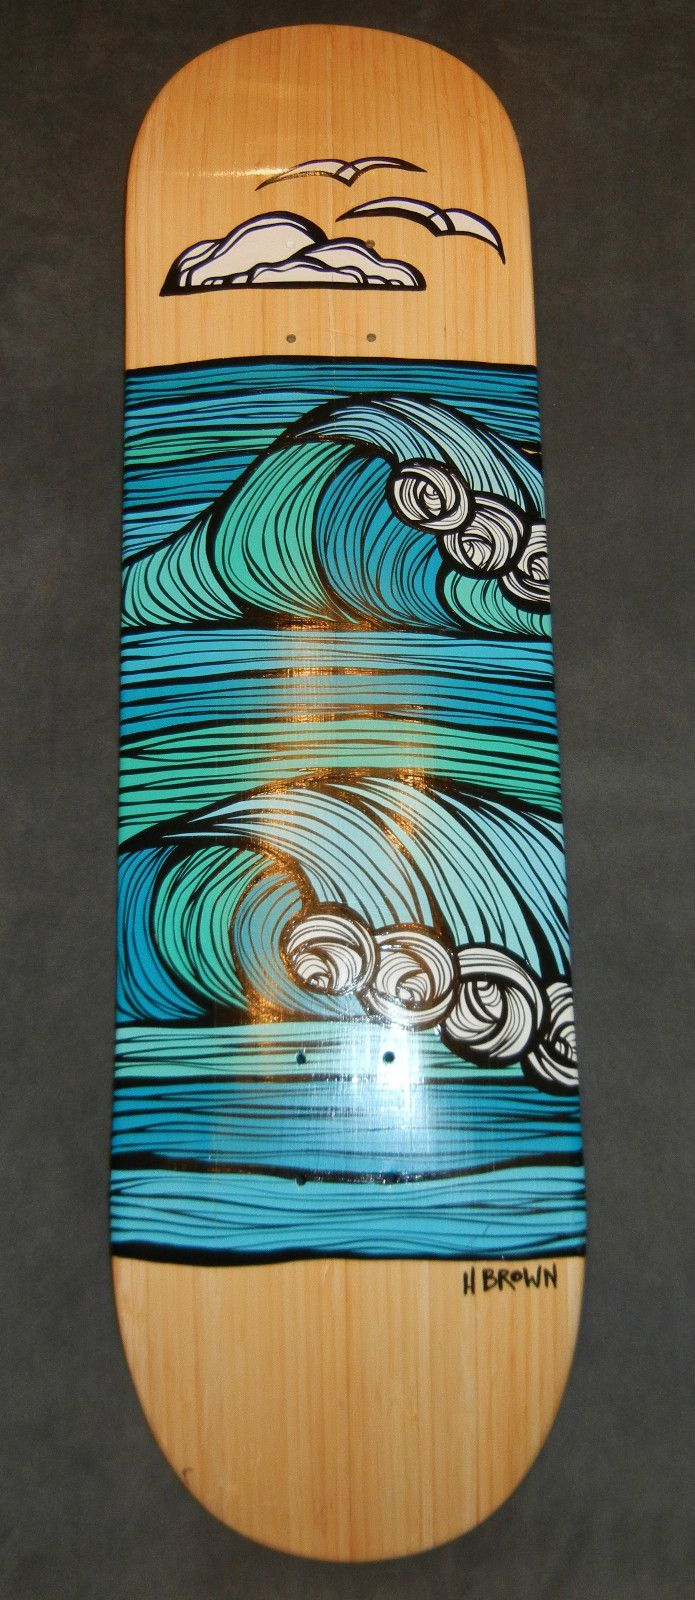 Skateboard Design Ideas 17 best images about grip tape designs on pinterest sector nine skate girl and cool skateboards Heather Brown Original Painting On Bamboo Skateboard